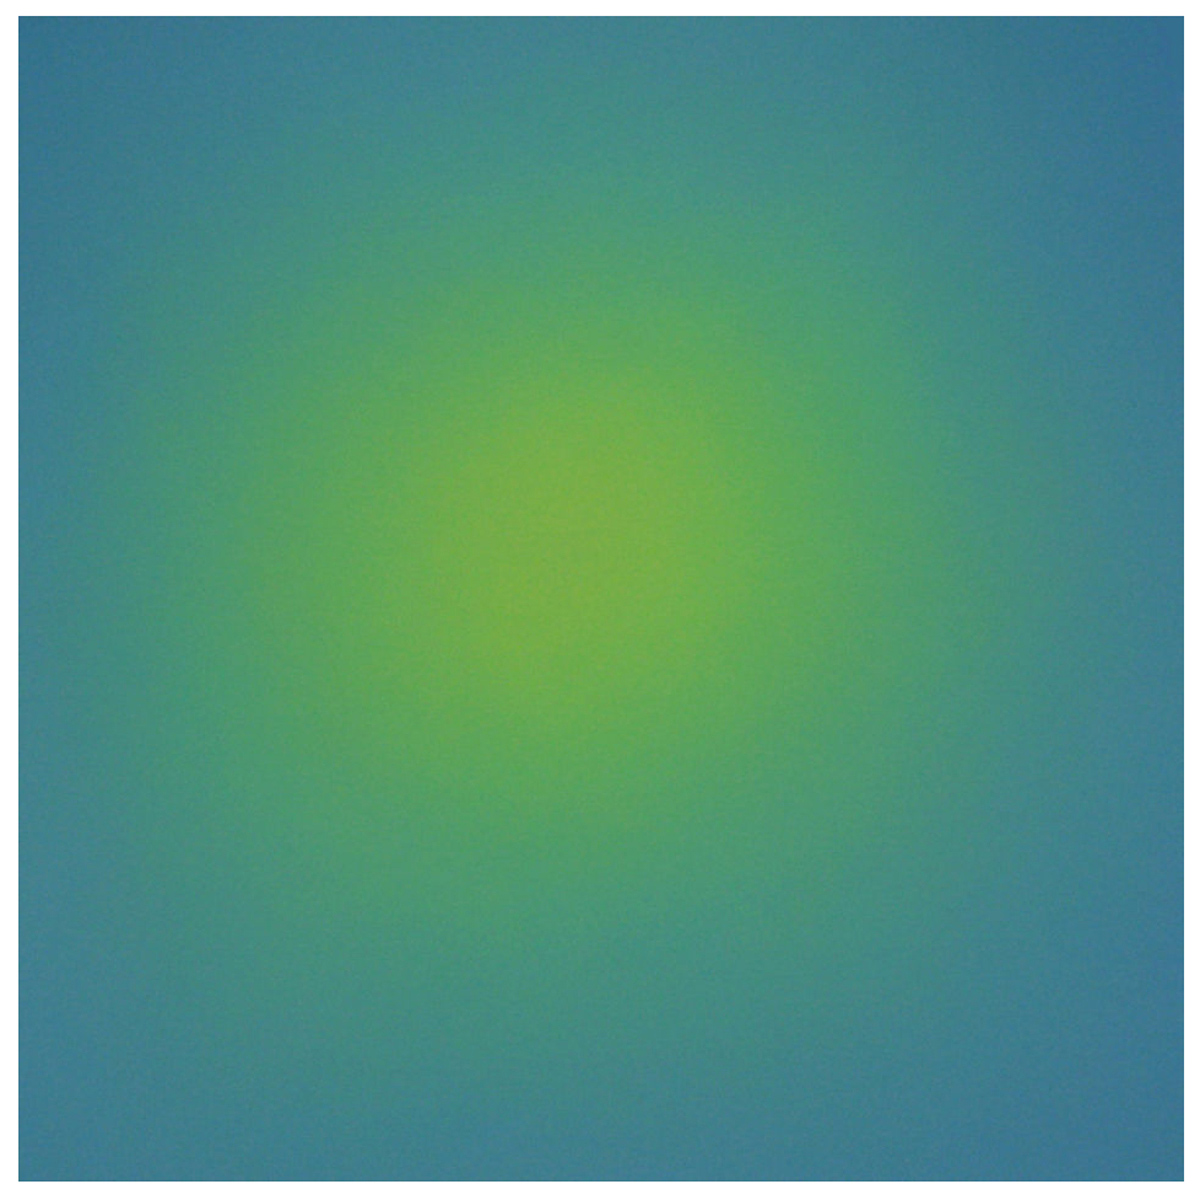 Source (Yellow Blue-Violet), Ray Painting #5, 1997, oil on canvas, 30 x 30 in. (76 x 76 cm.)